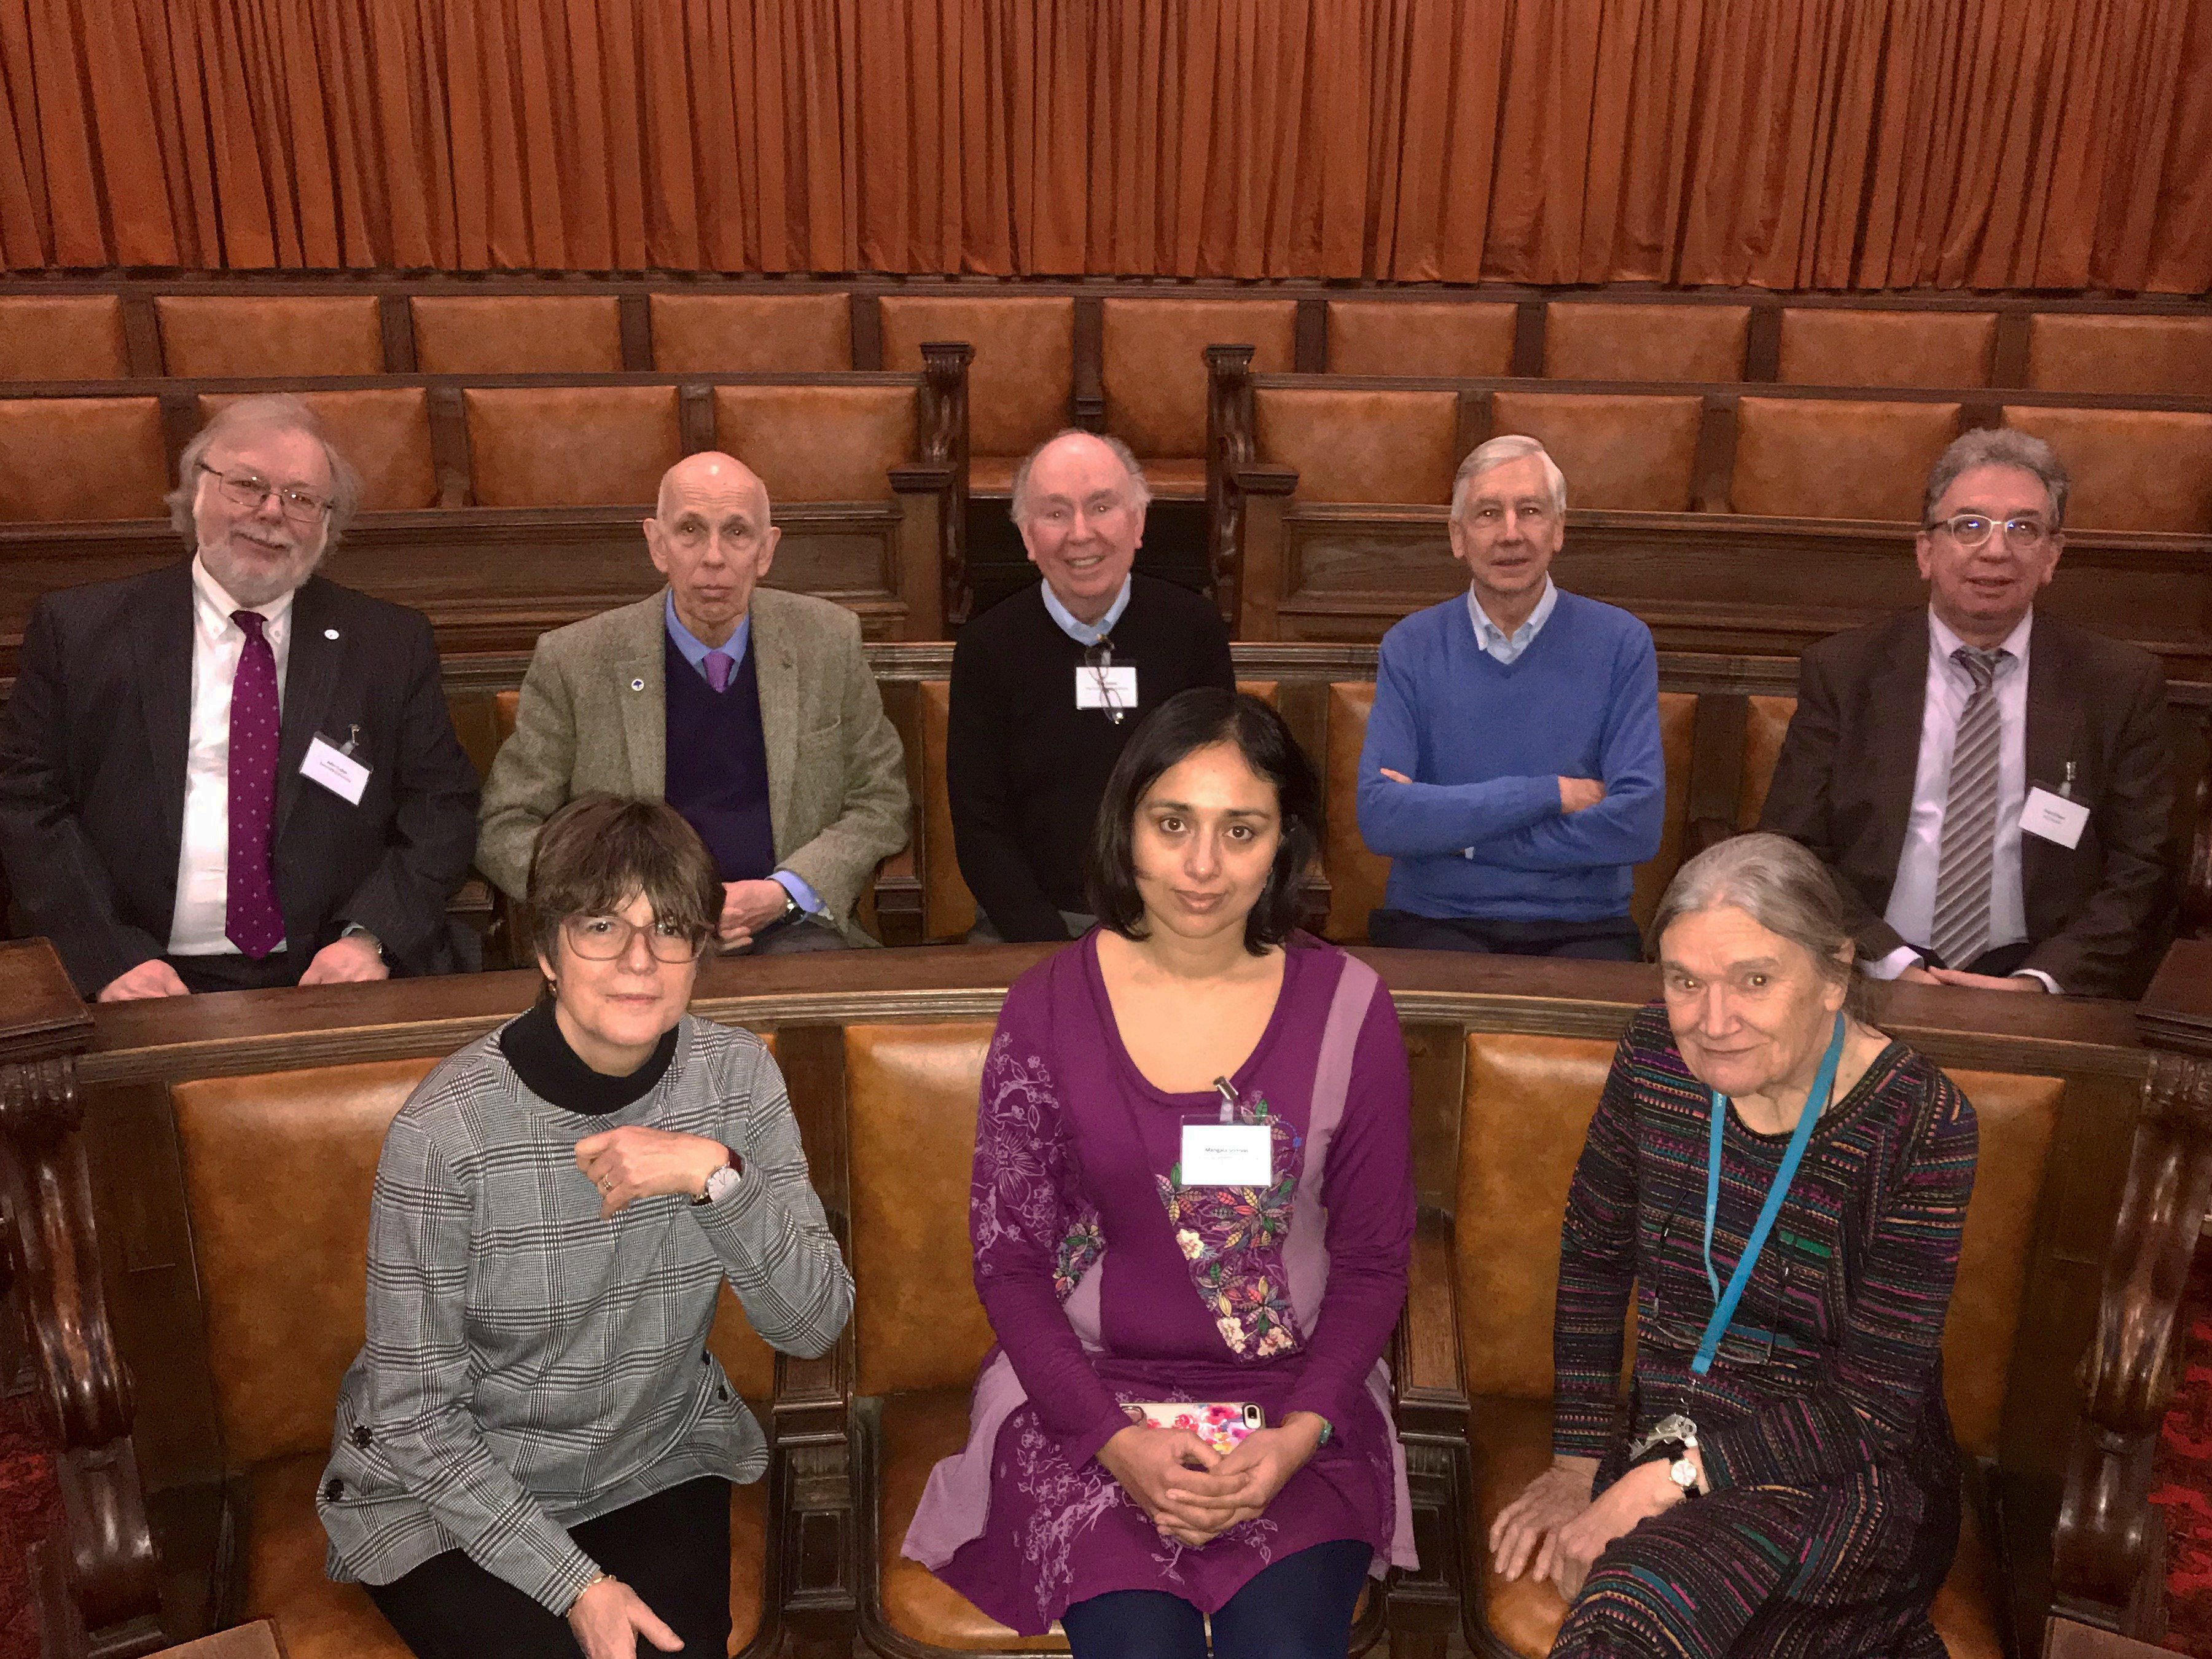 Members of the Cardiff Hub Steering Group with guest Mangala Srivinas, President of the Young Academy of Europe (front middle)